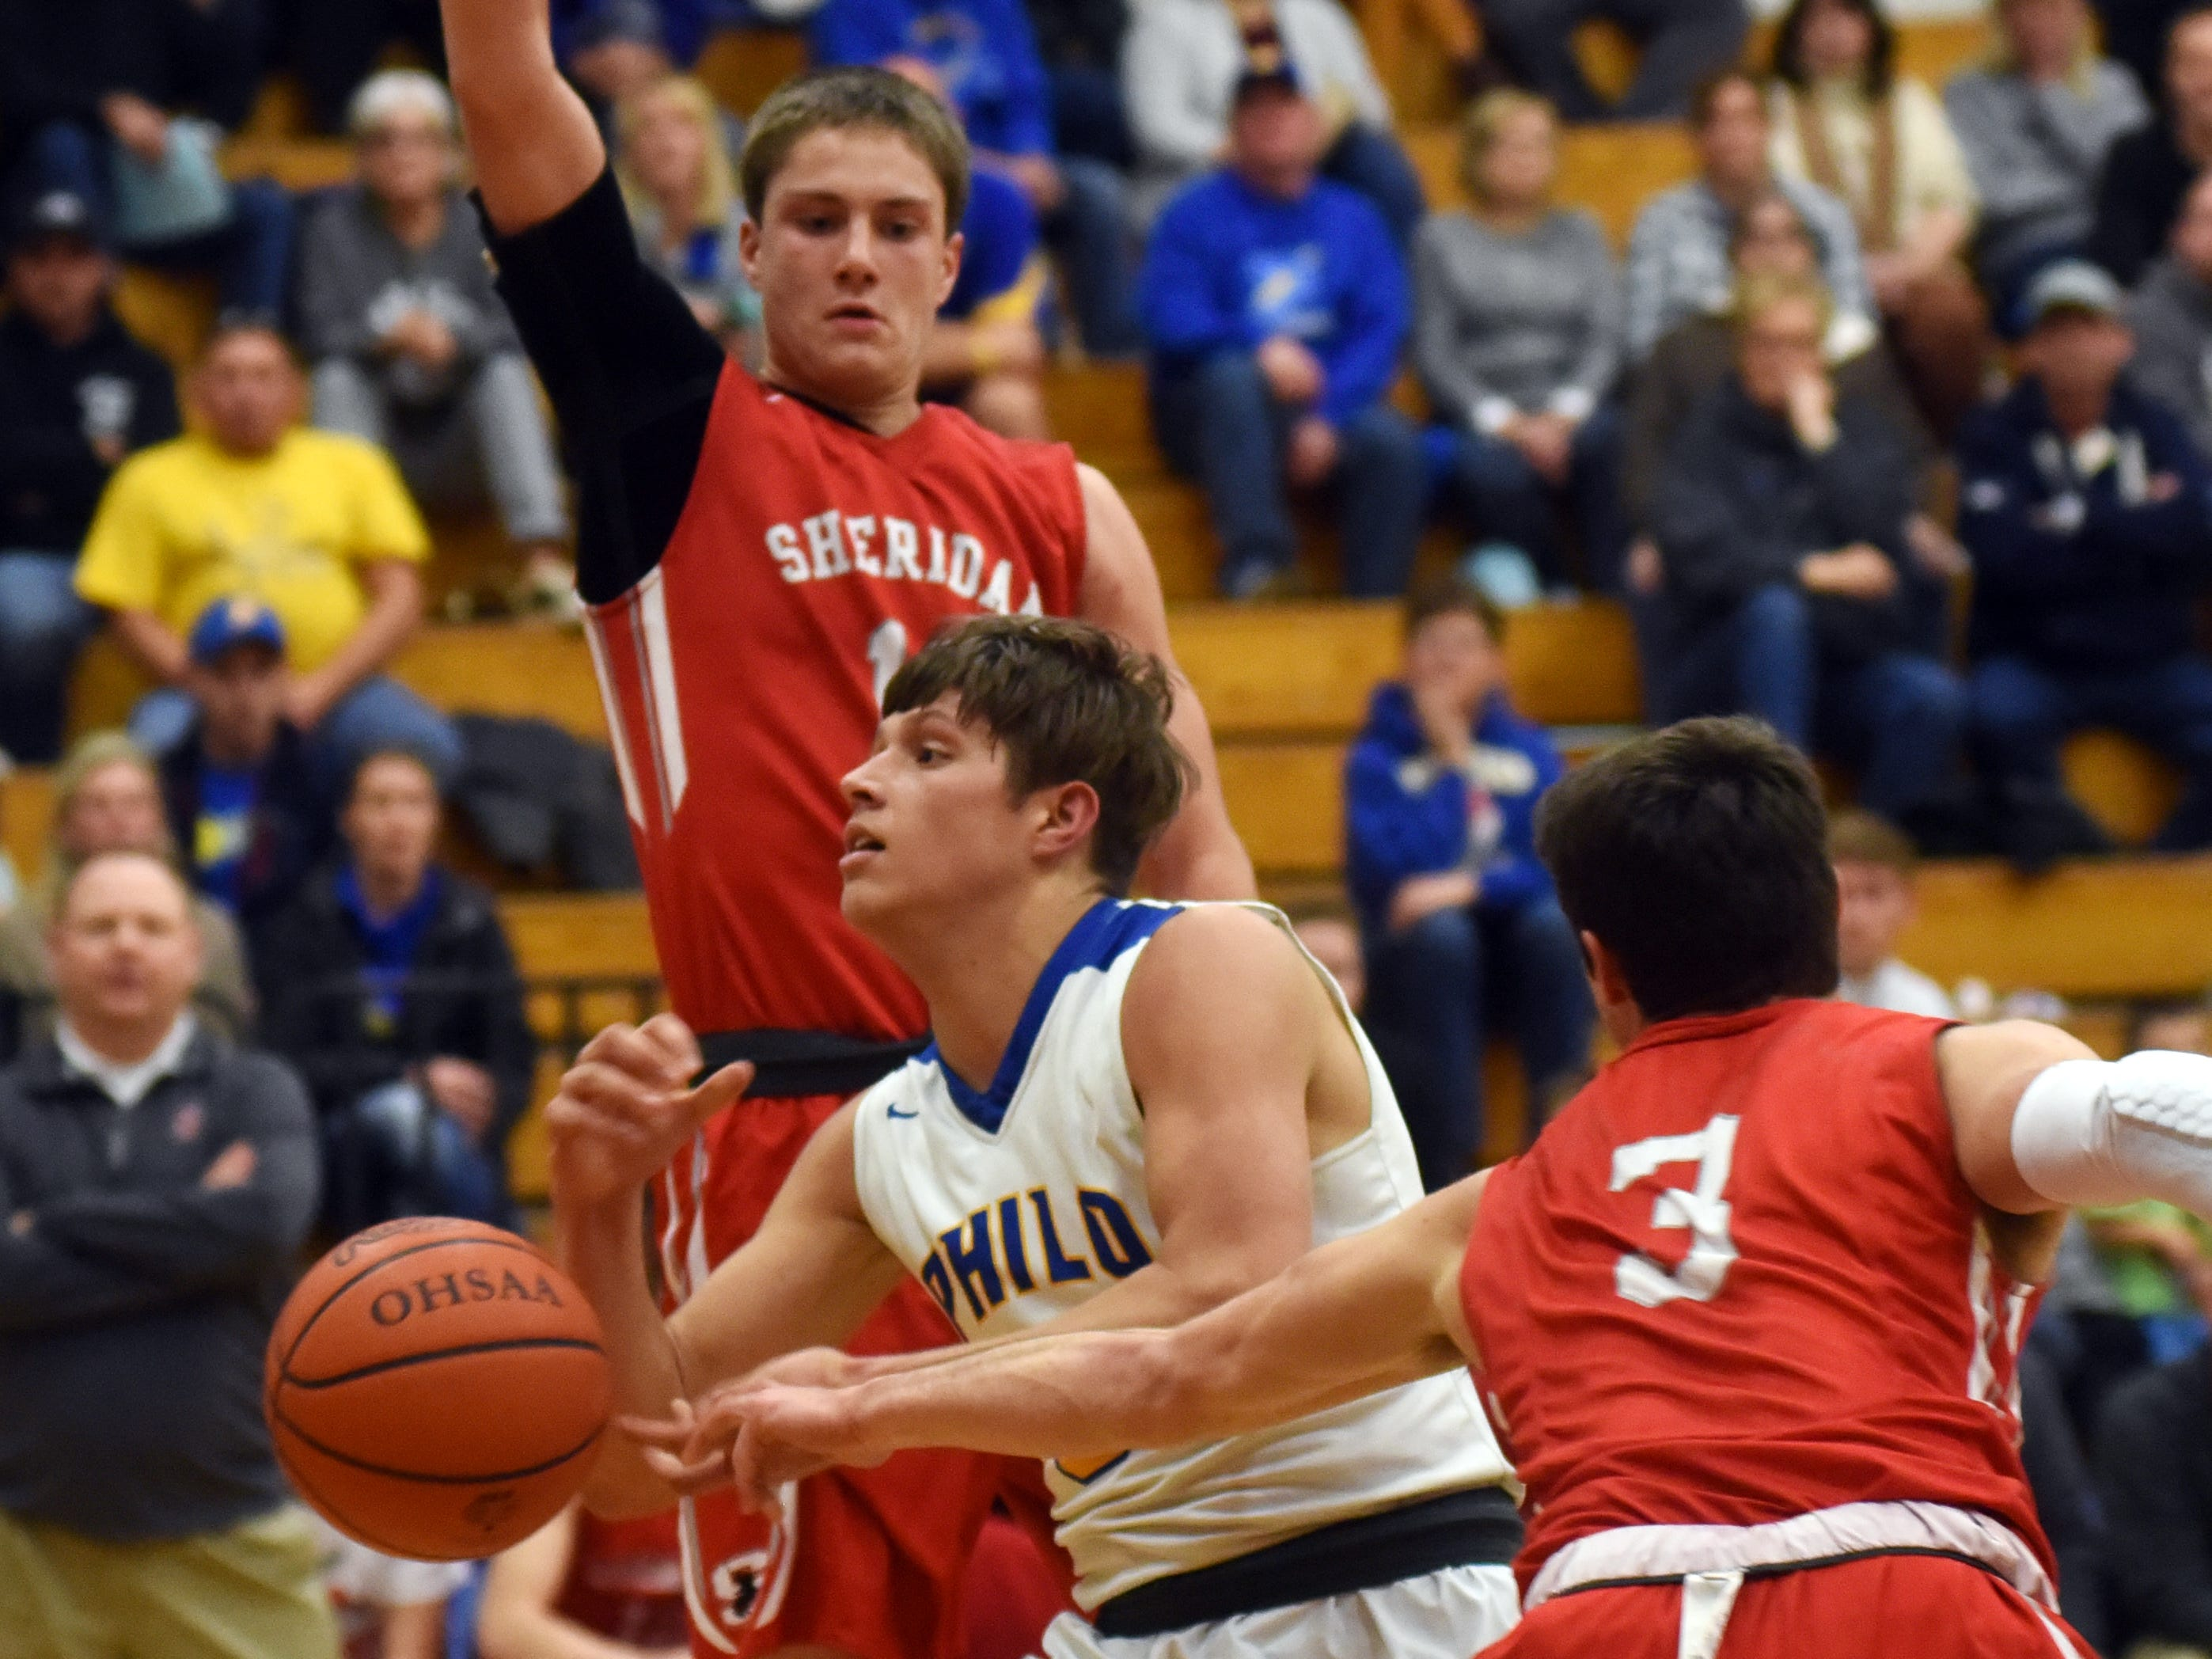 Cody Butler, of Philo, drives through traffic against Sheridan.